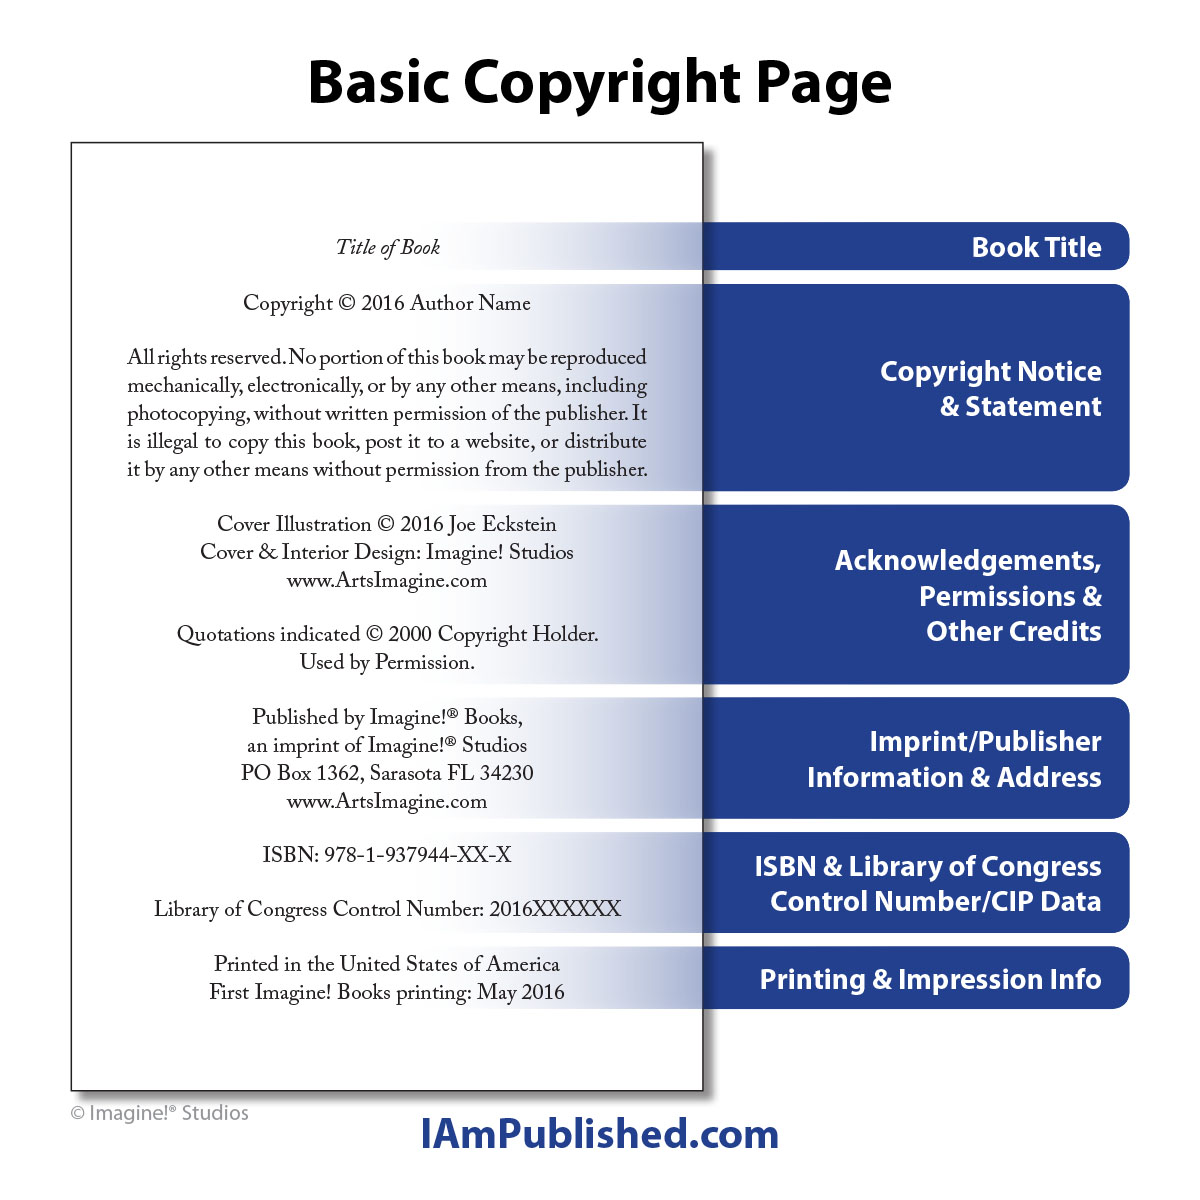 A sample copyright page with explanation